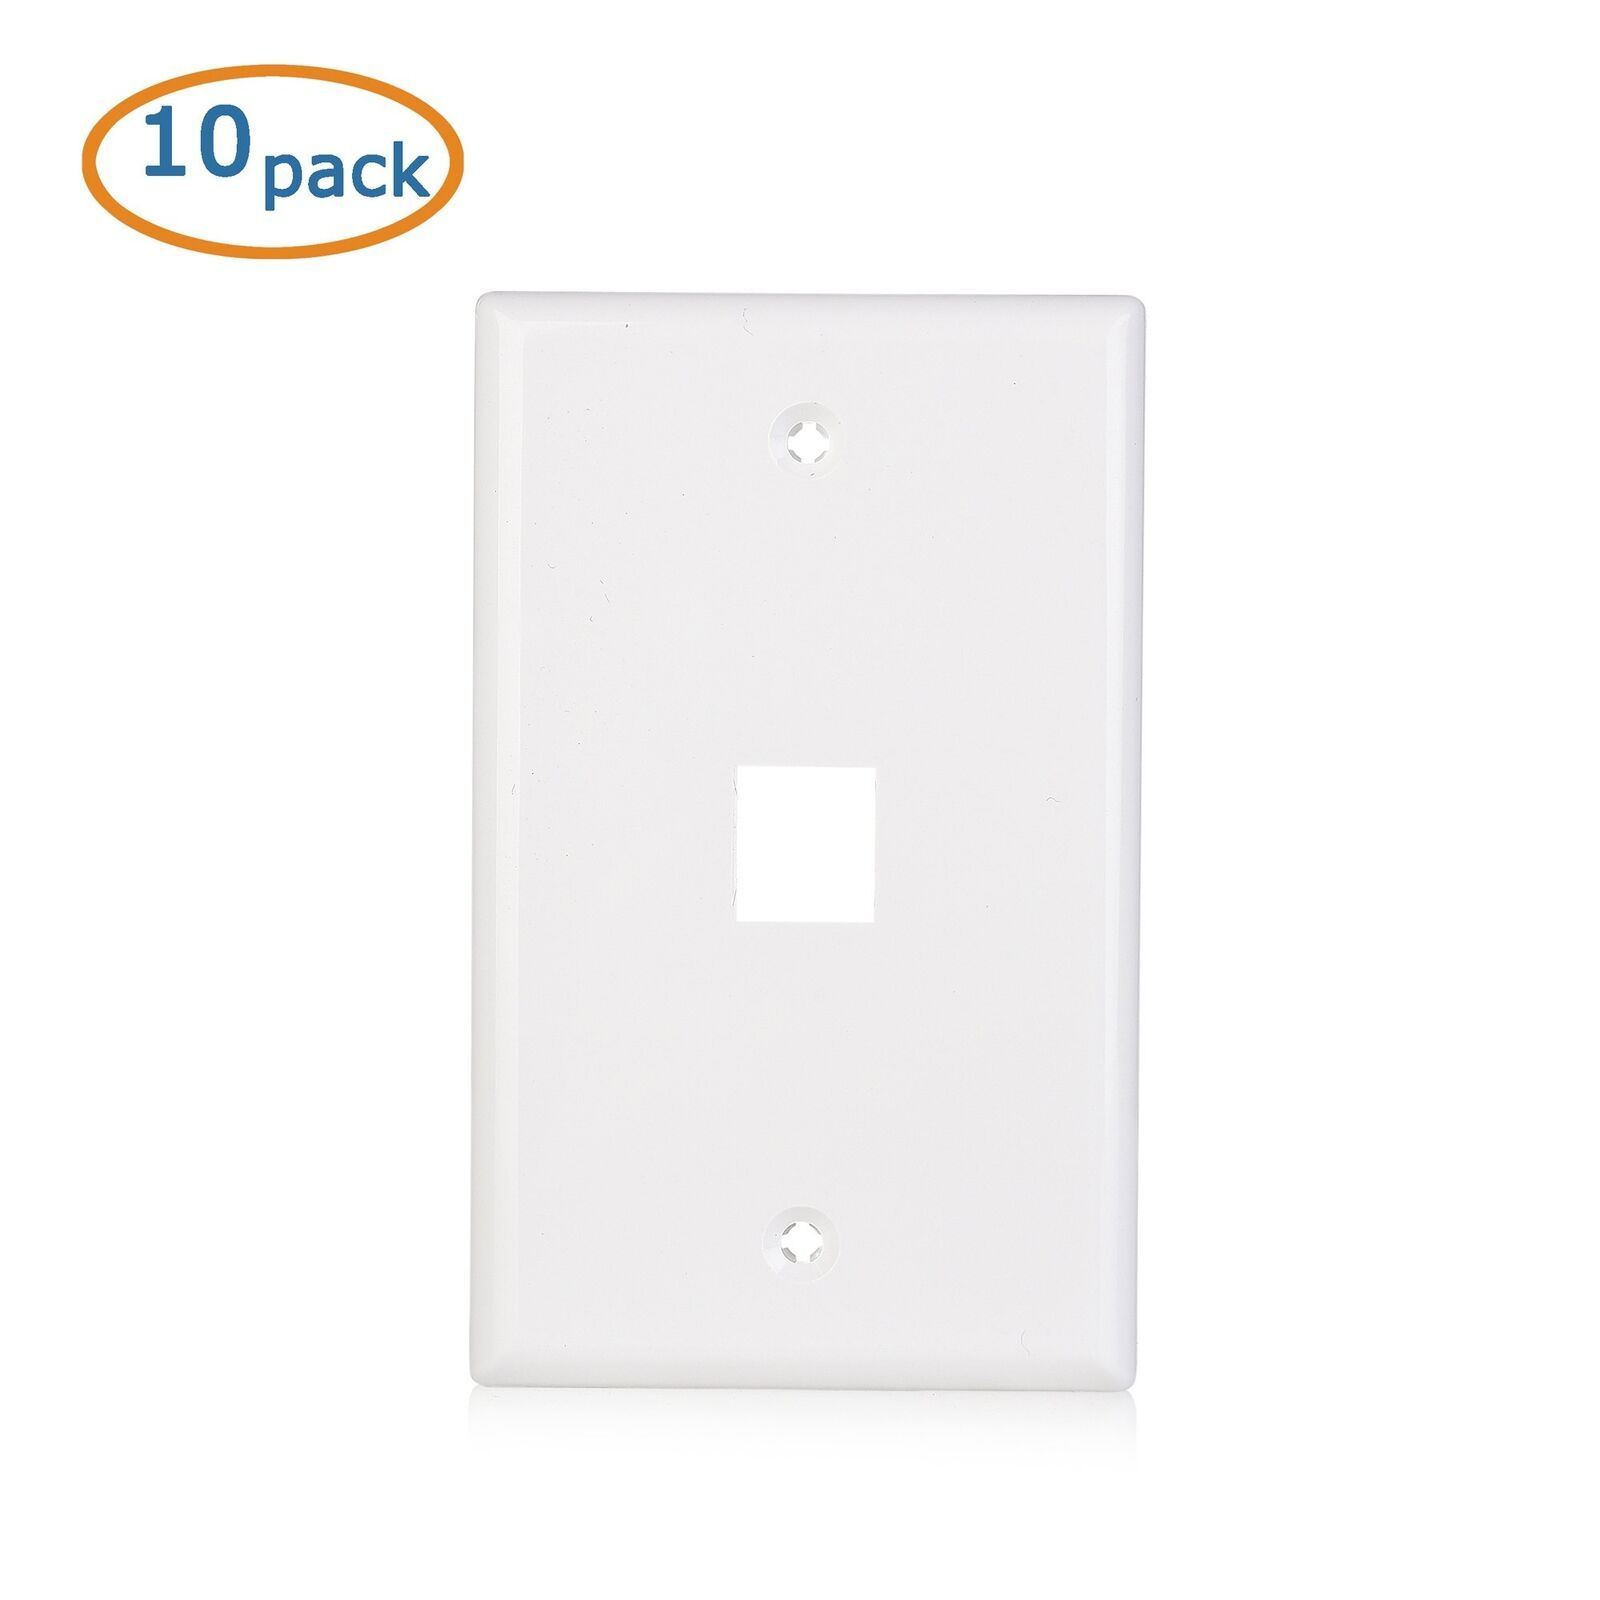 Cable Matters 10 Pack Low Profile 1 Port Keystone Jack Wall Plate In White Check More At Https Terrashopia Com Pr Plates On Wall Computer Network Low Profile